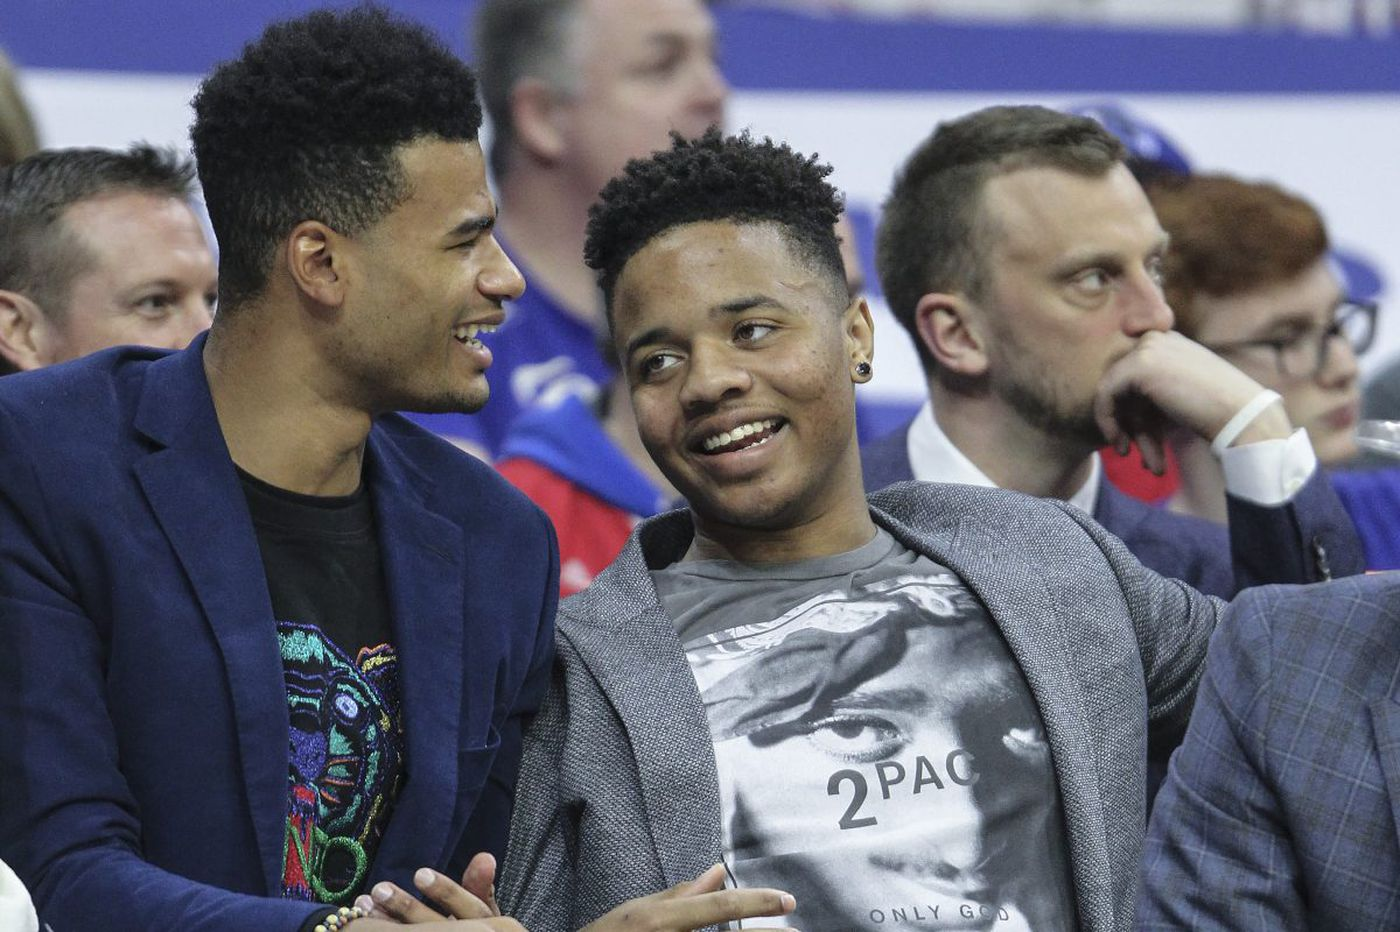 Markelle Fultz's return to the Sixers' lineup could be soon, but it's not as simple as it seems